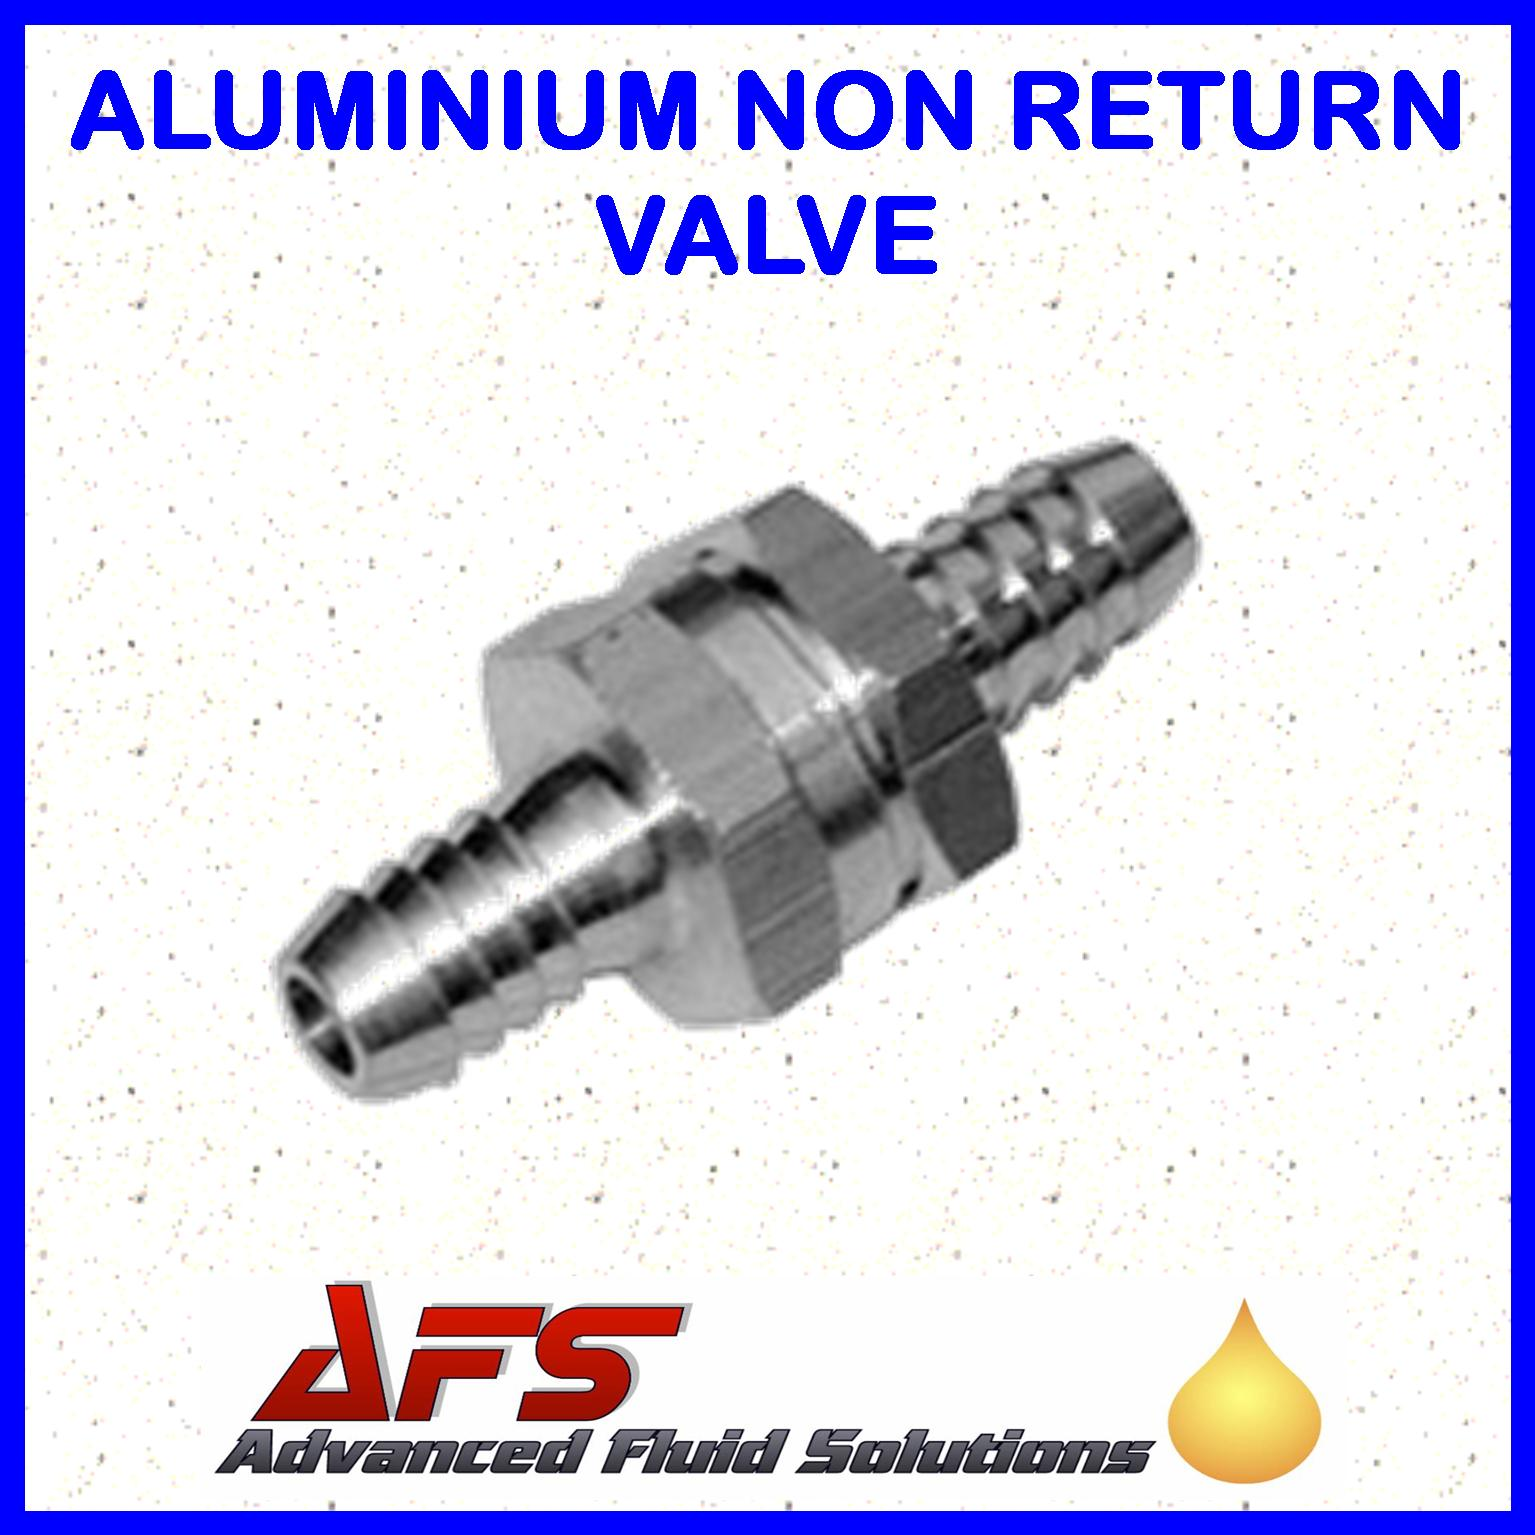 hight resolution of 8mm 5 16 straight non return valve aluminium fuel check valve air water pipe tube hose